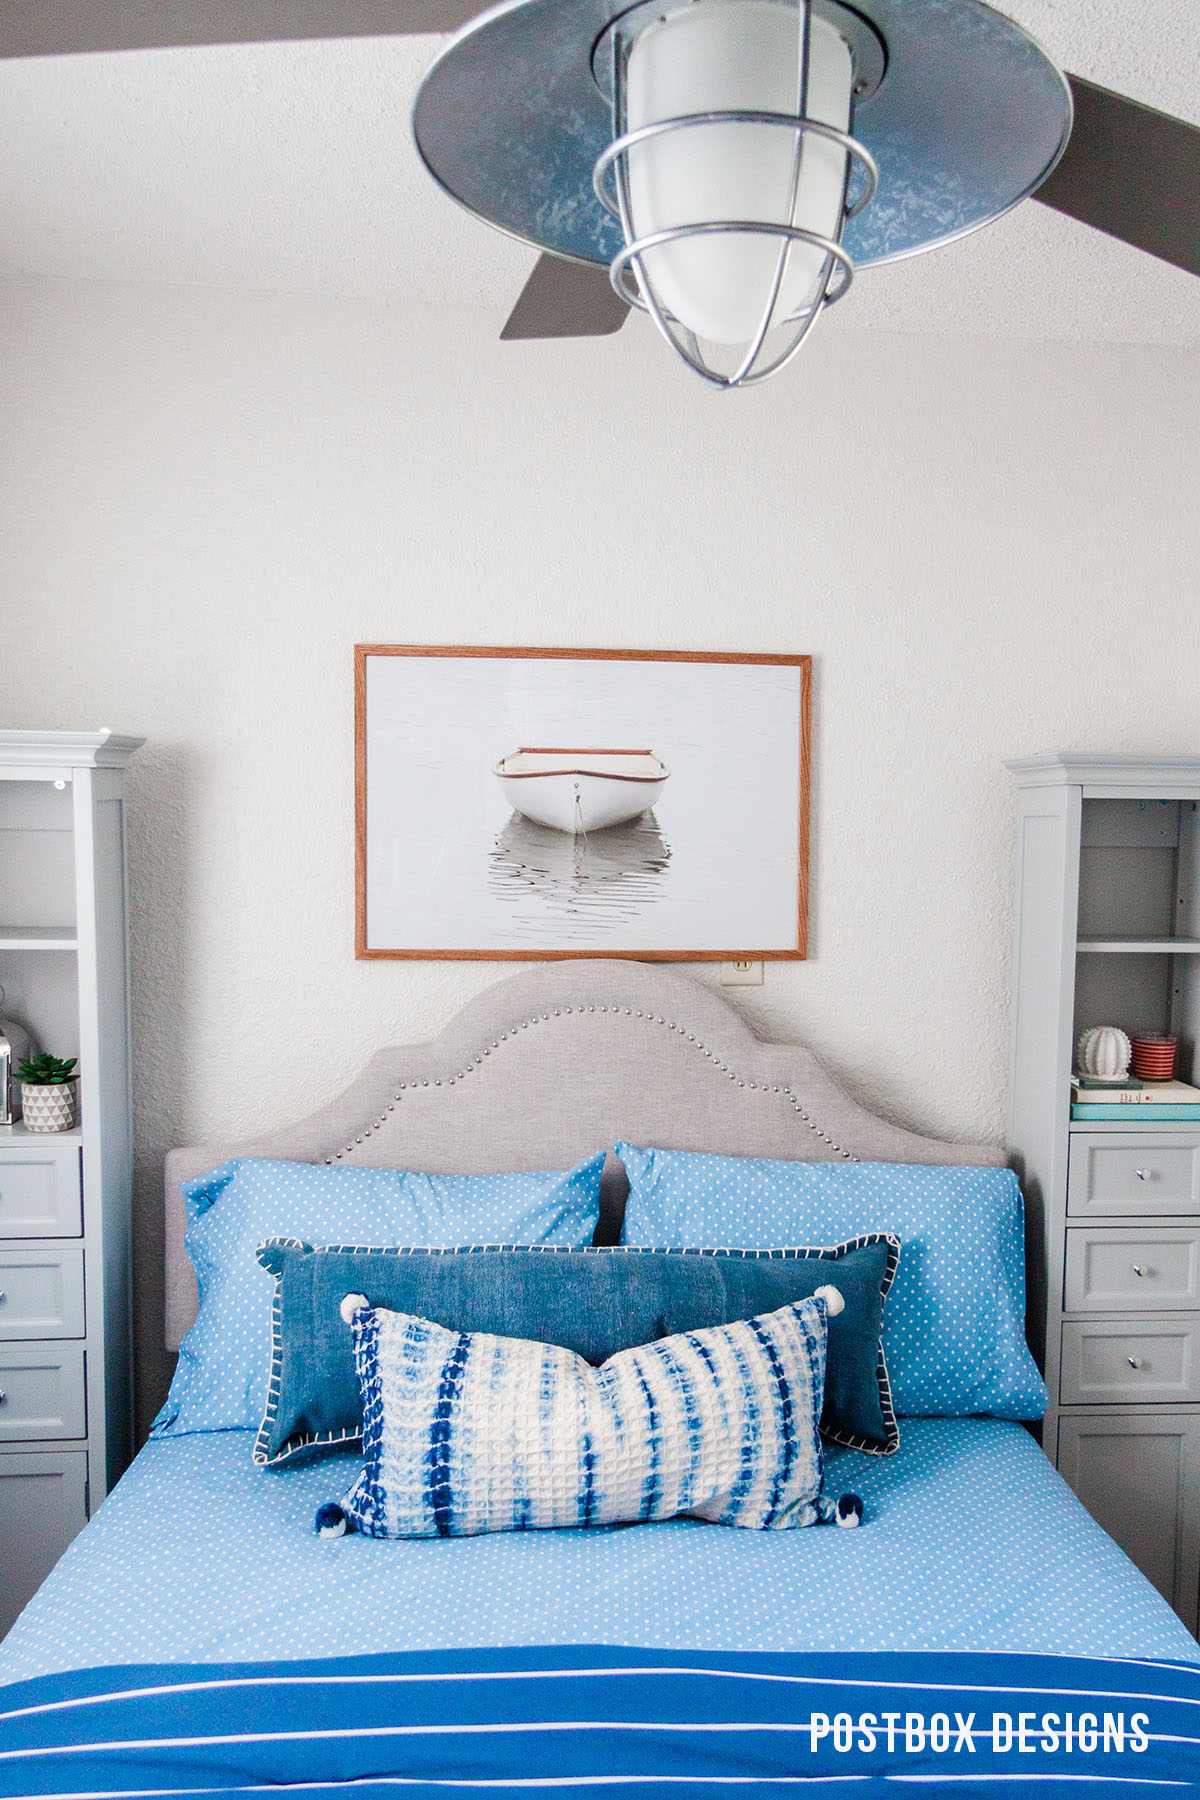 Peek Into My Own Lake House Bedroom Makeover Postbox Designs